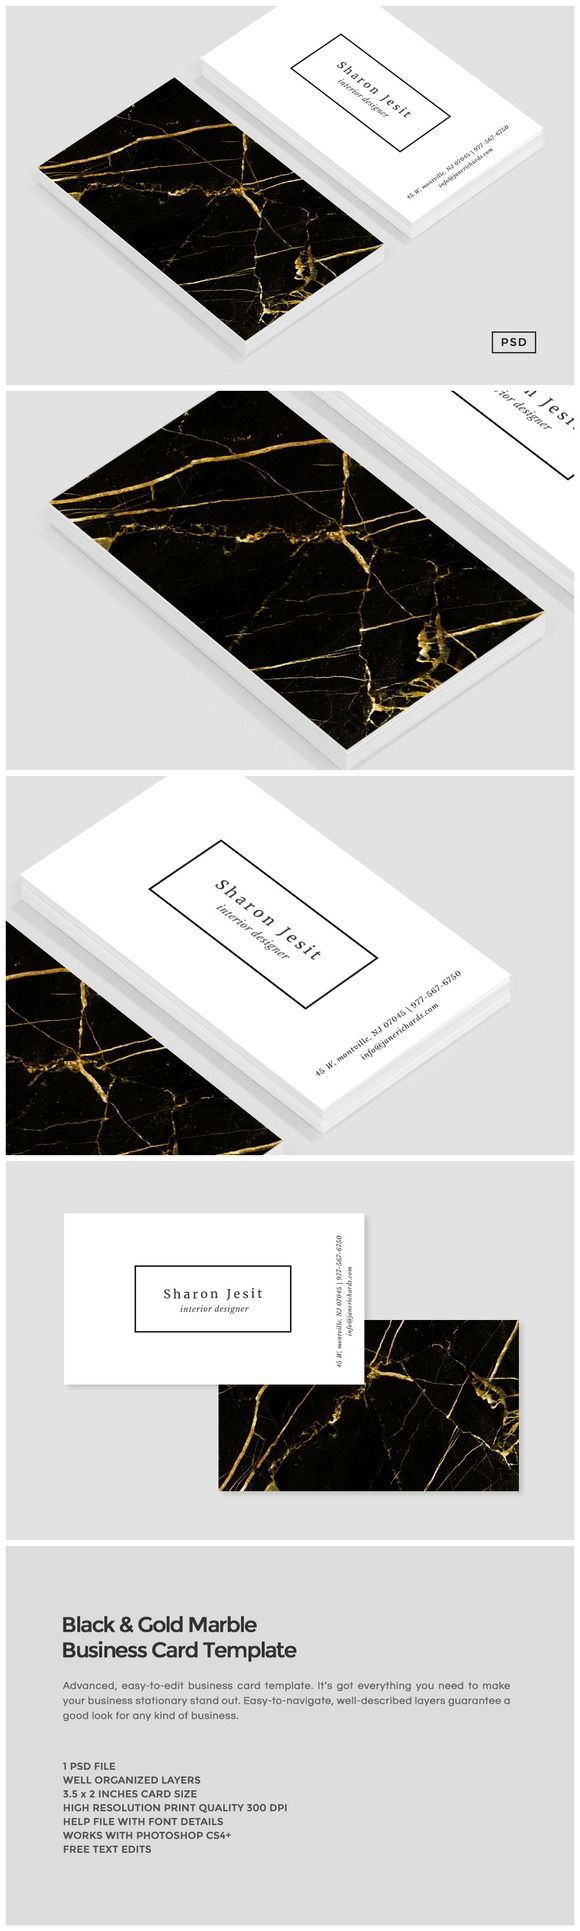 819 Best Business Cards Images On Pinterest Business Cards Carte